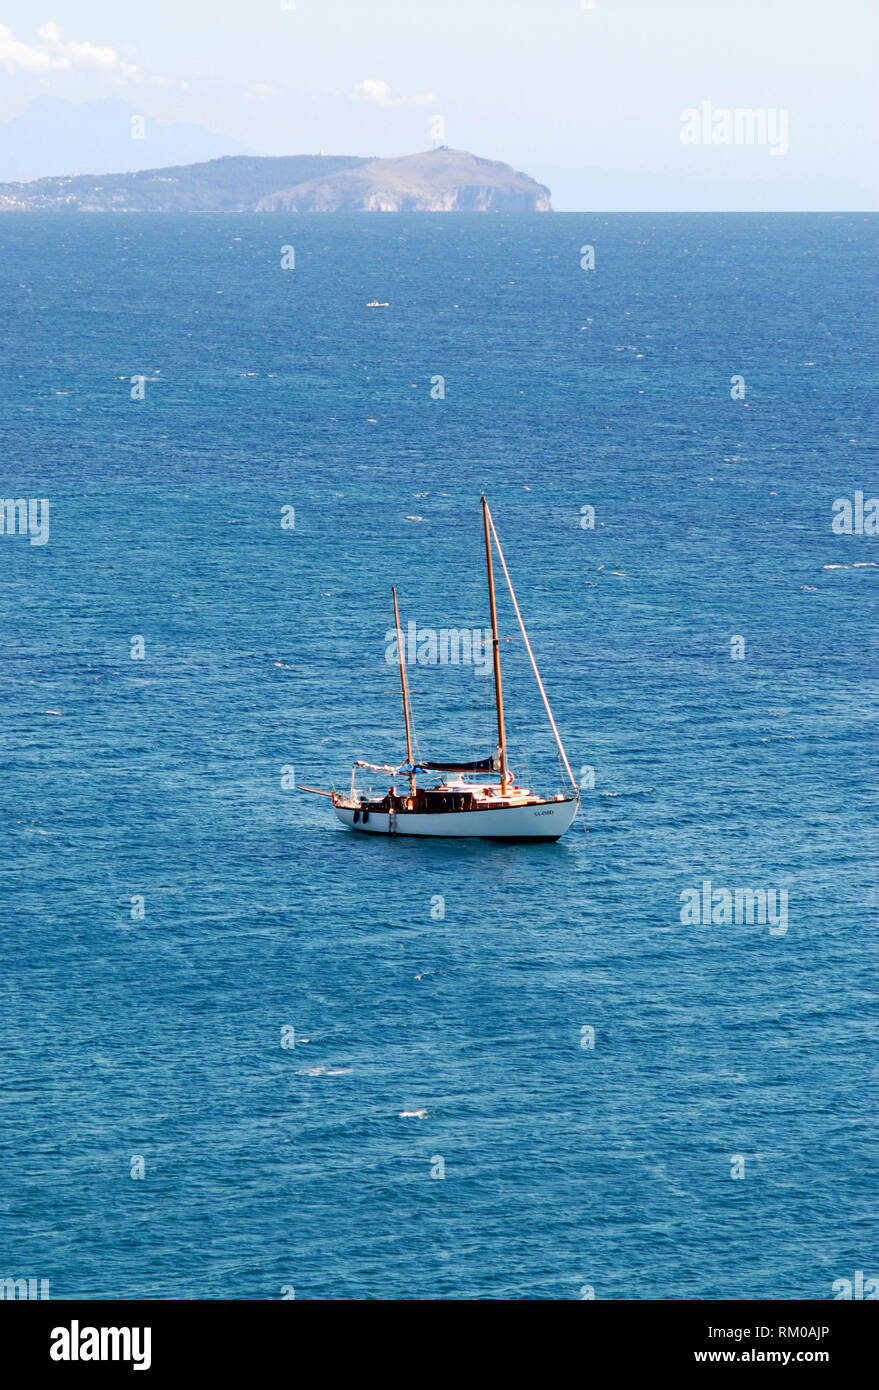 twin-shaft sail boat yacht enjoy the sea stopping quiet at anchor in the middle of the sea with the palinurus head in the background near cilento coas - Stock Image